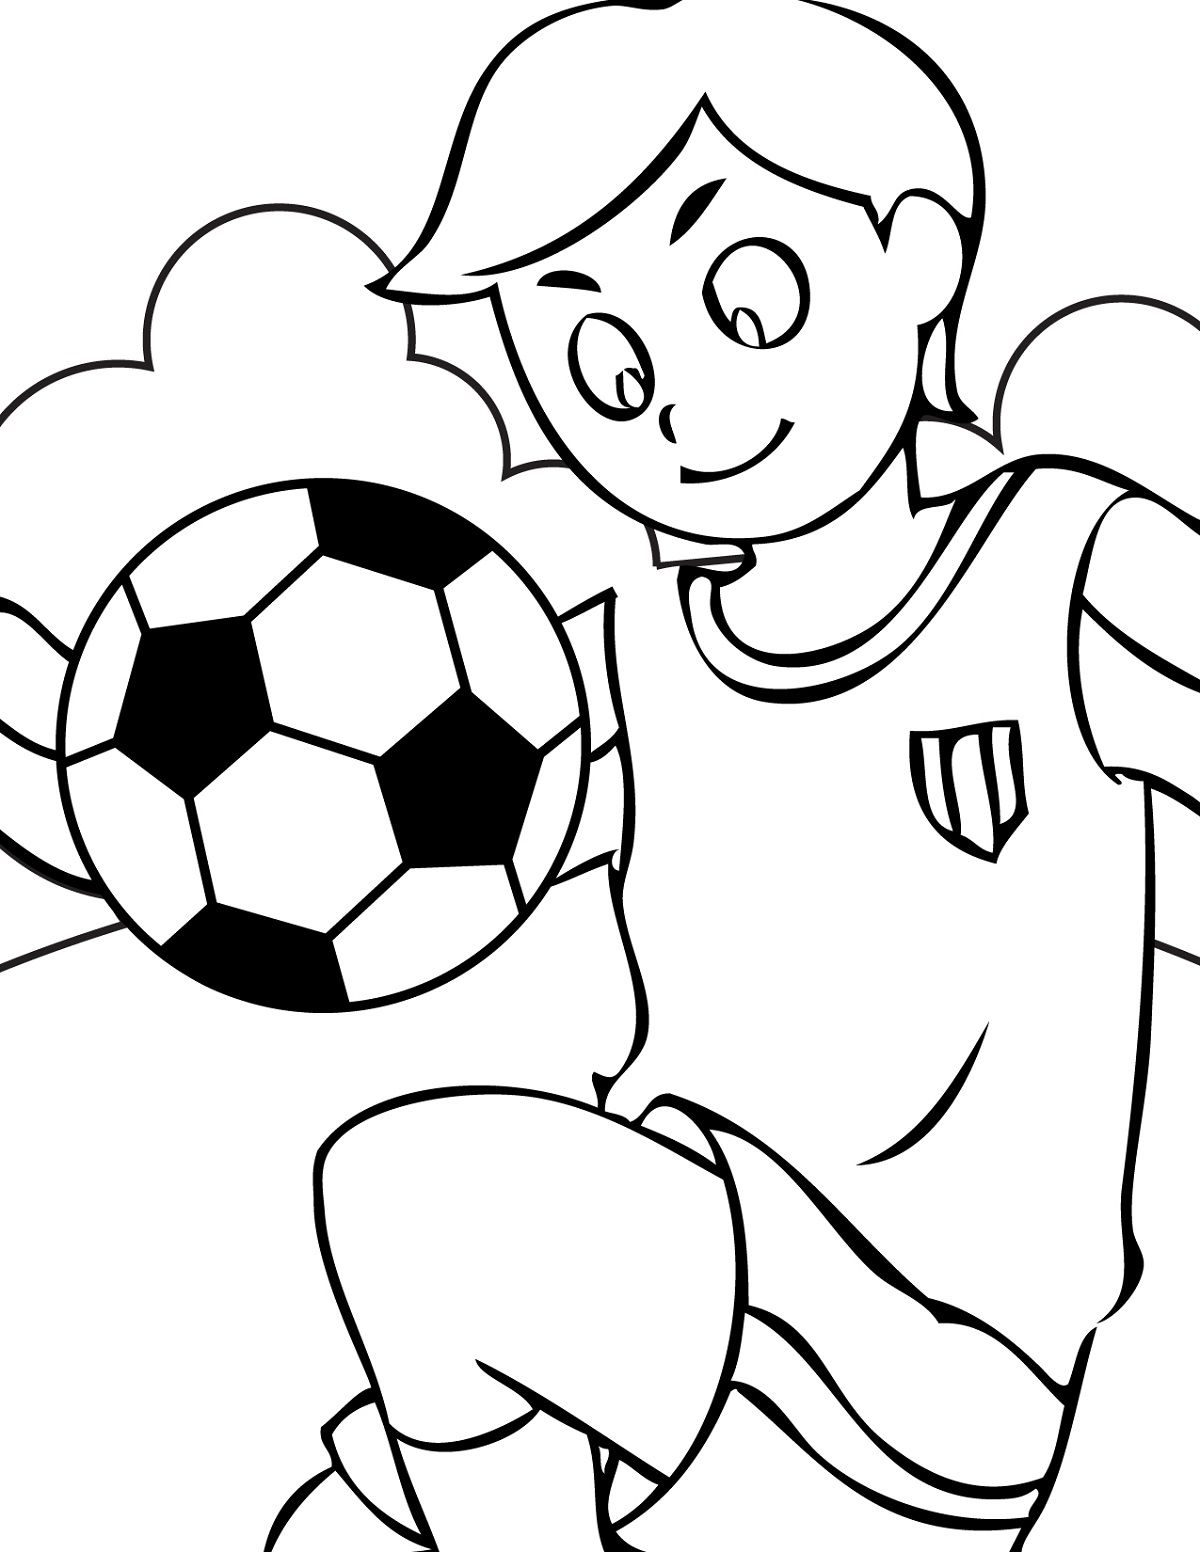 Soccer Worksheets For Kids Coloring Do Your Kids Have A